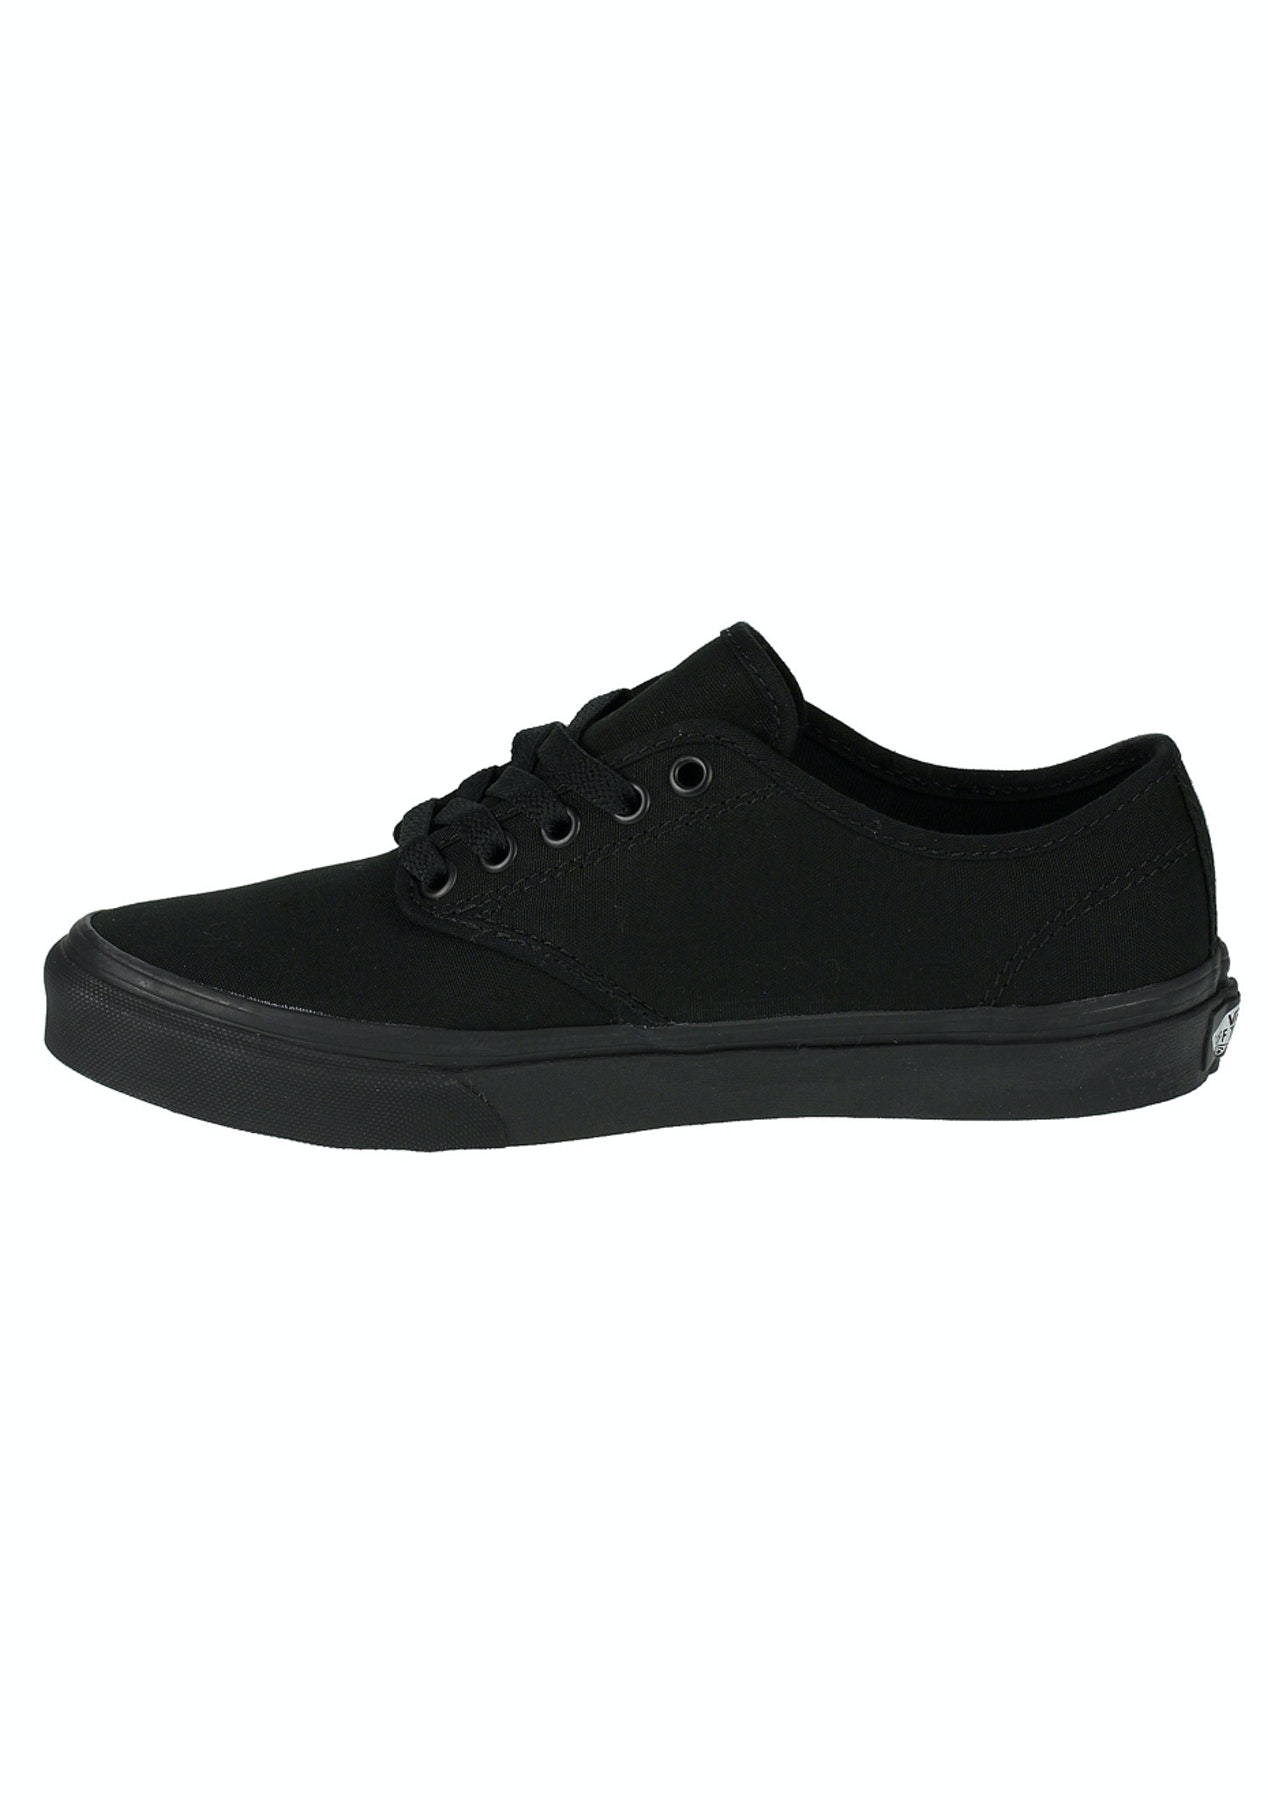 new appearance quality latest Vans - Womens Camden Stripe - Canvas - Black/Black